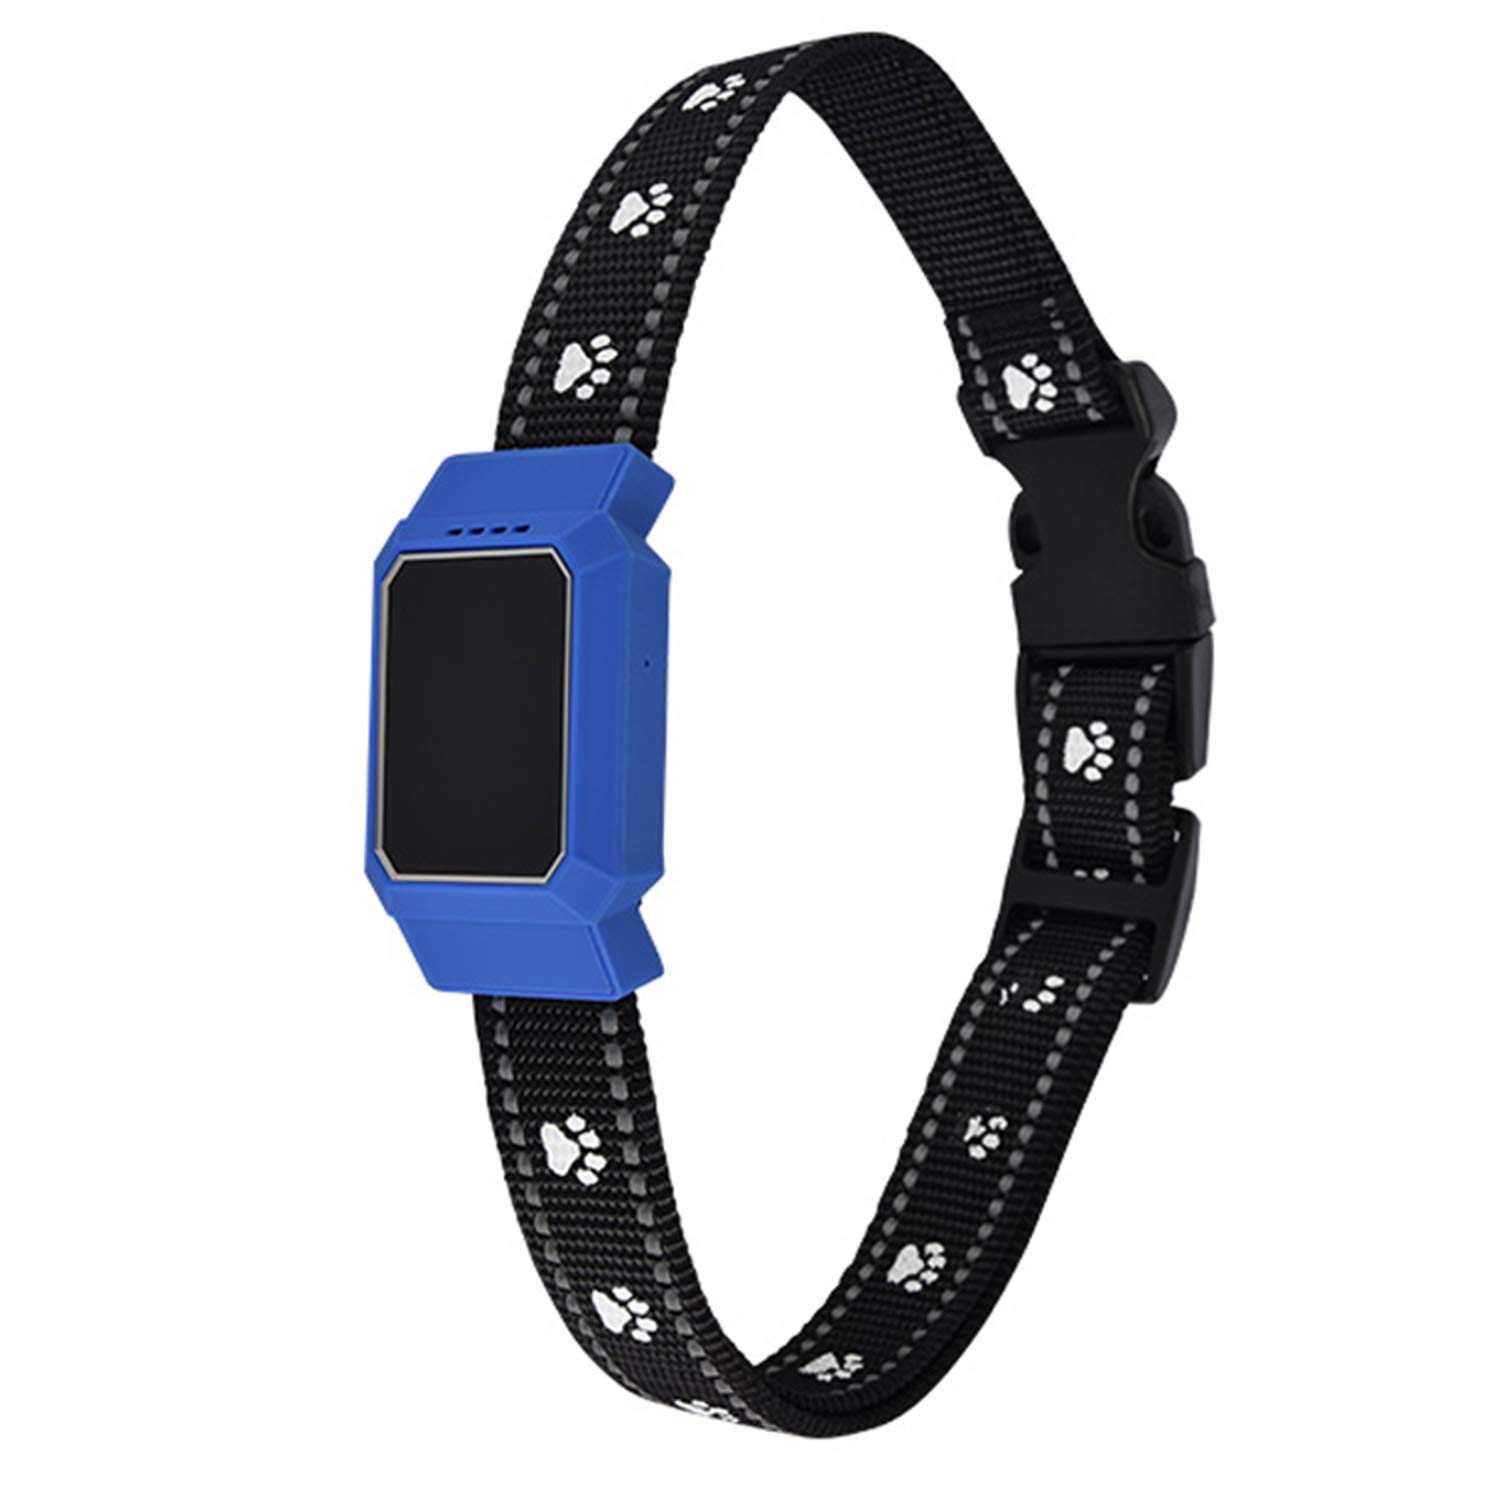 SGKHZ Pet Activity Tracker, IP67 Depth Waterproof Pets & Rare Animal Searcher Locator Trajectory Tracking Alarm, Easy to Use, Suitable for Dogs and Cats,Blue